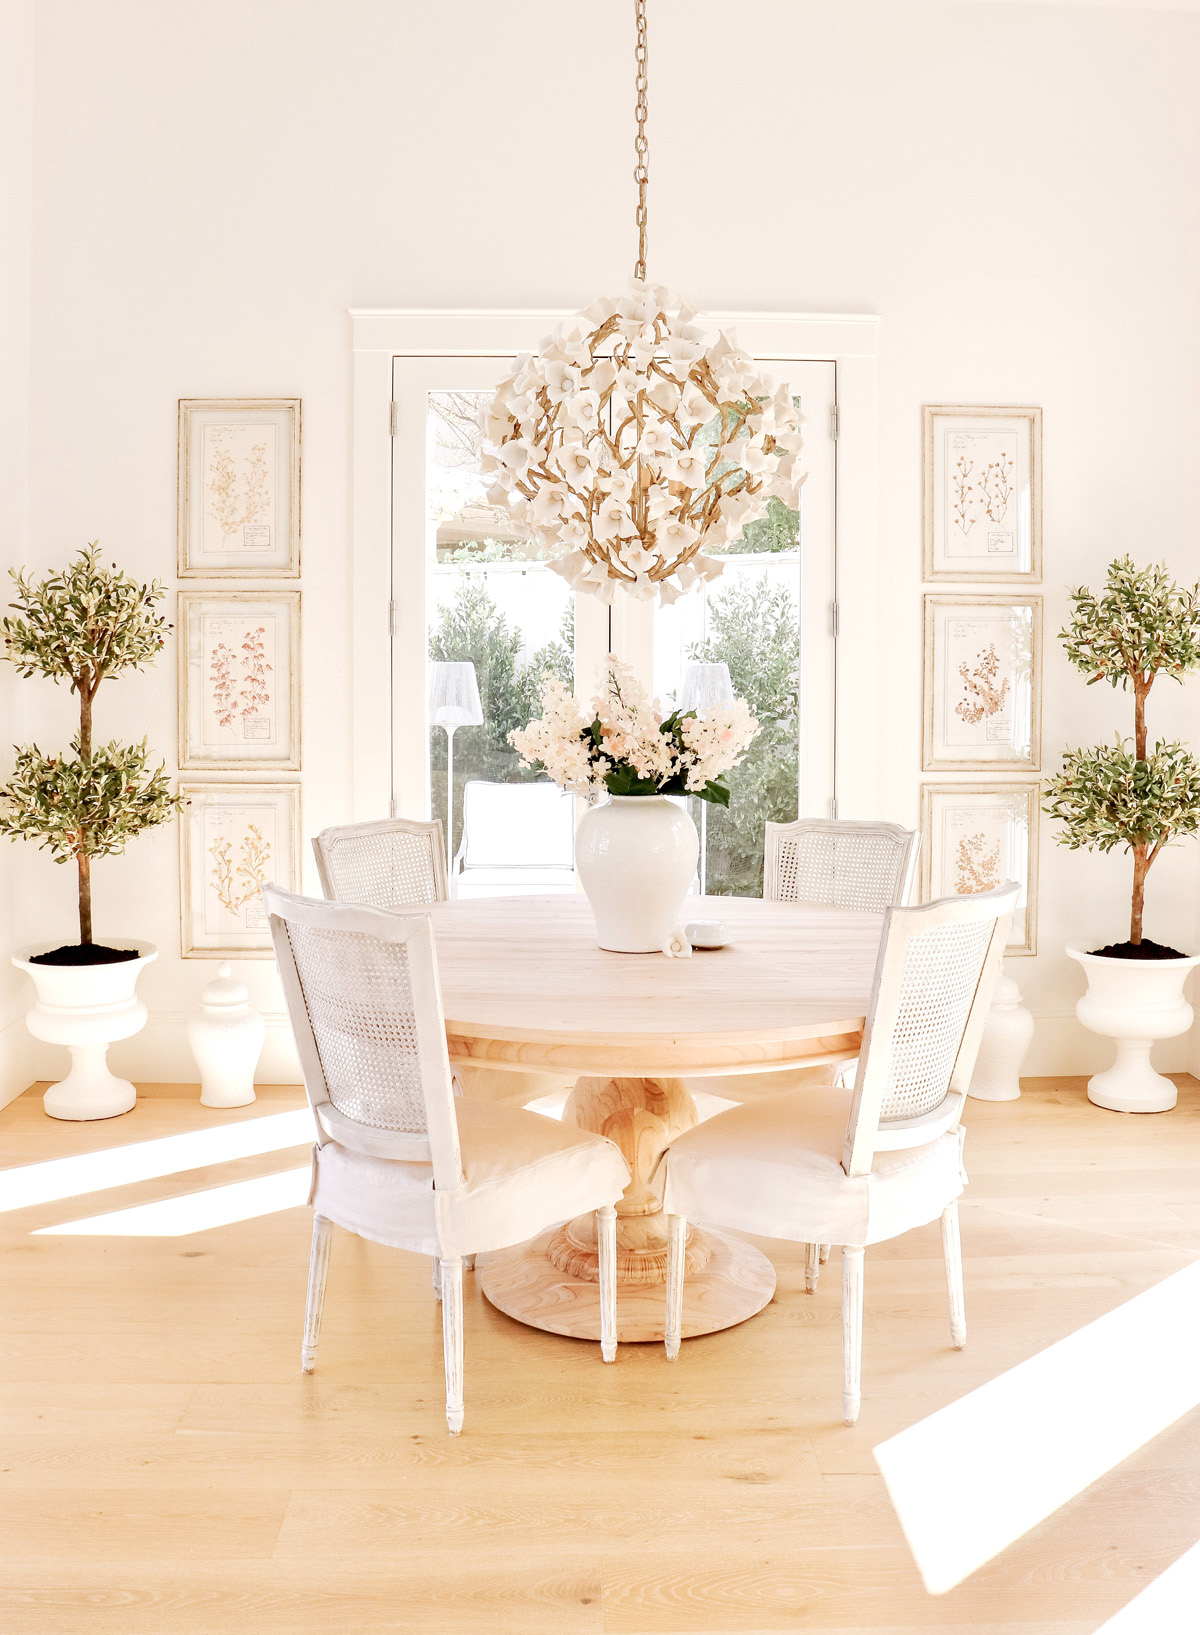 Wayfair Wayday Shopping Guide - Best Pieces and Items On Sale! How to shop the wayfair wayday sale.